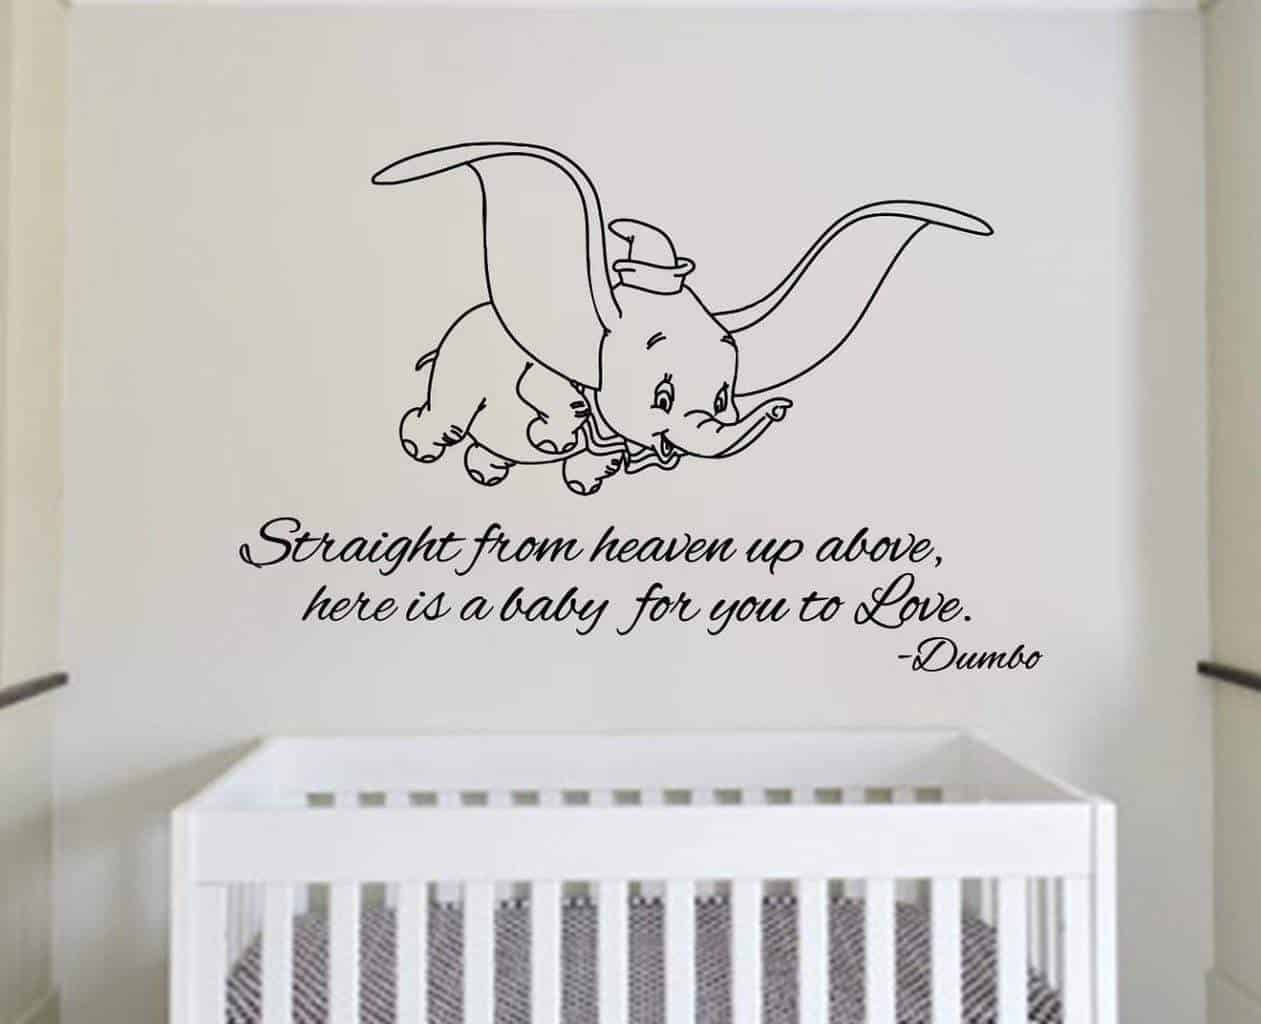 Dumbo - Straight from heaven wall decal sticker